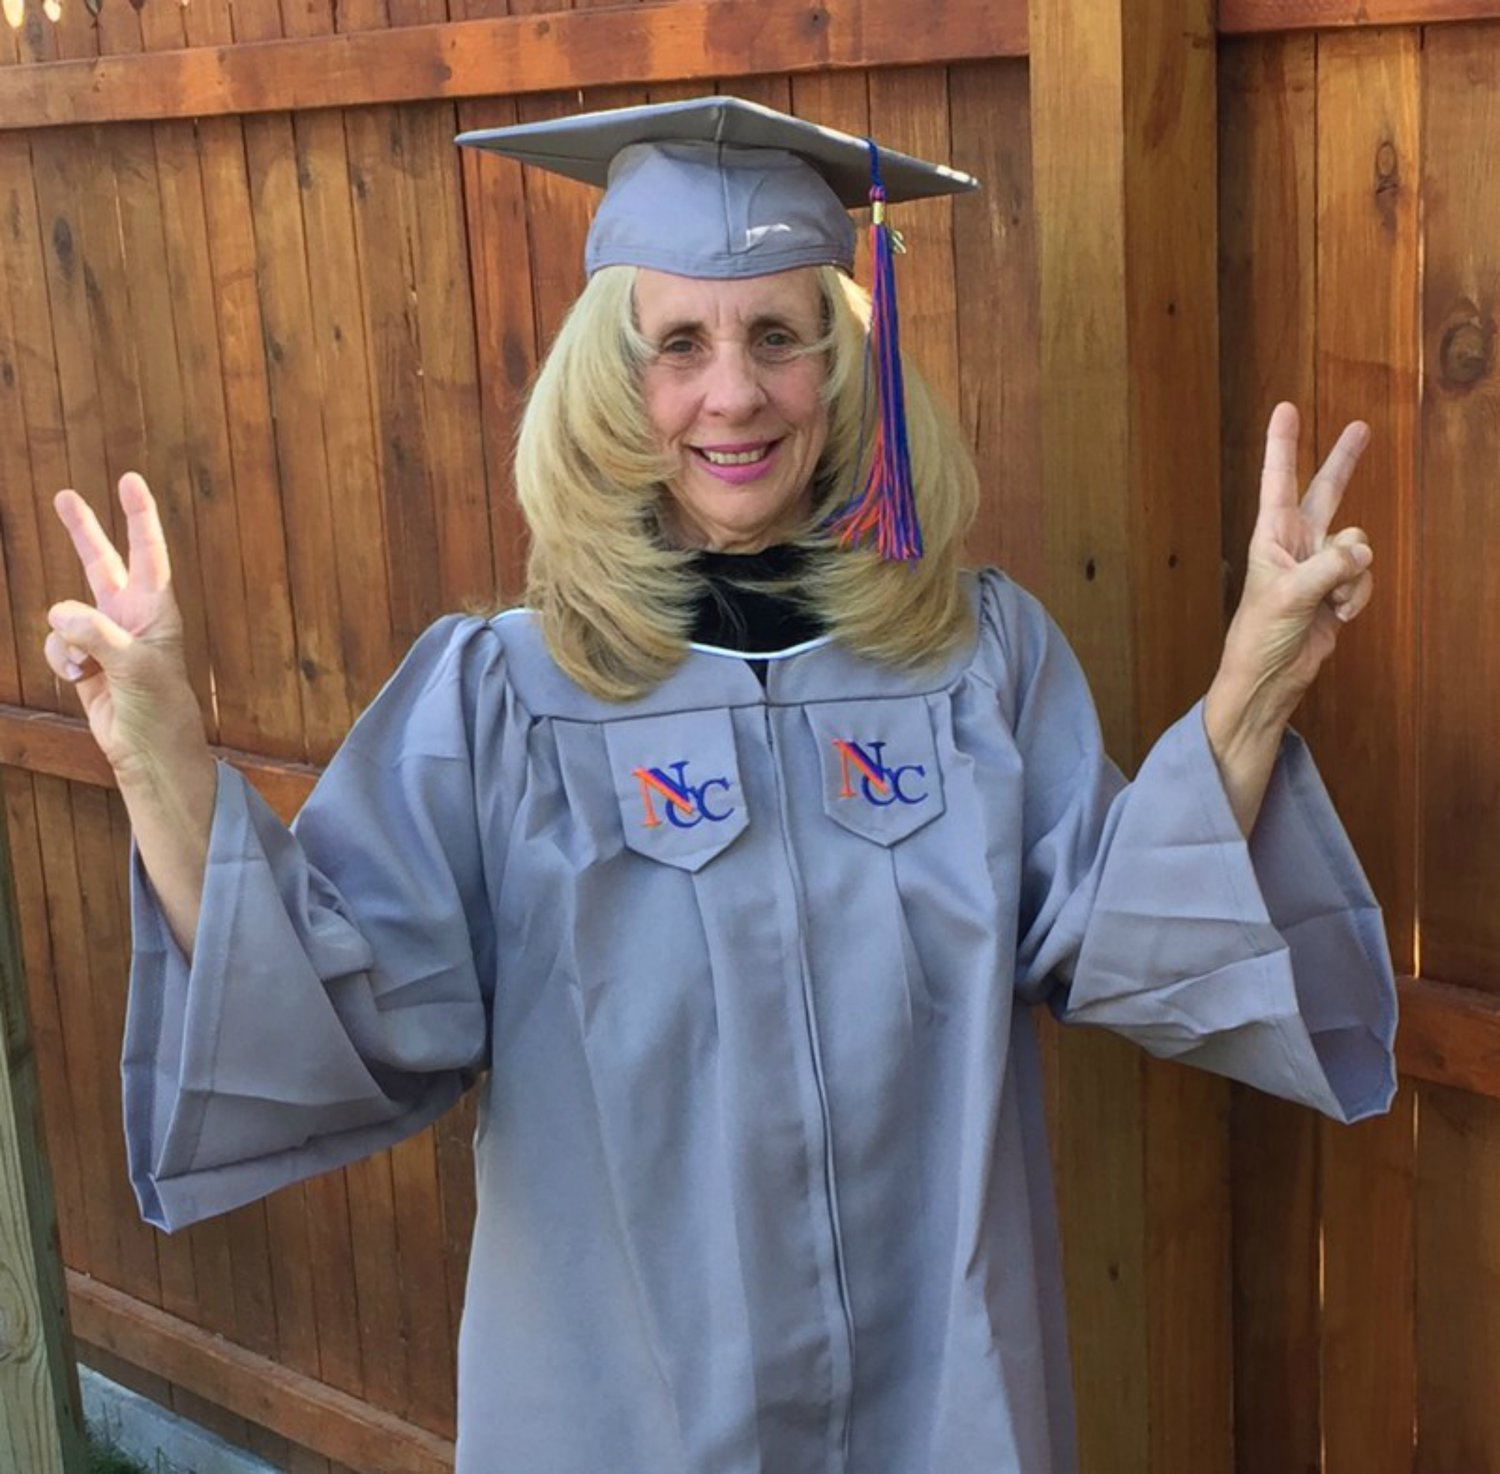 Pamela Marie Young Osman, 59, of Glen Cove, is graduating from Nassau Community College with a associate's degree in disability studies.